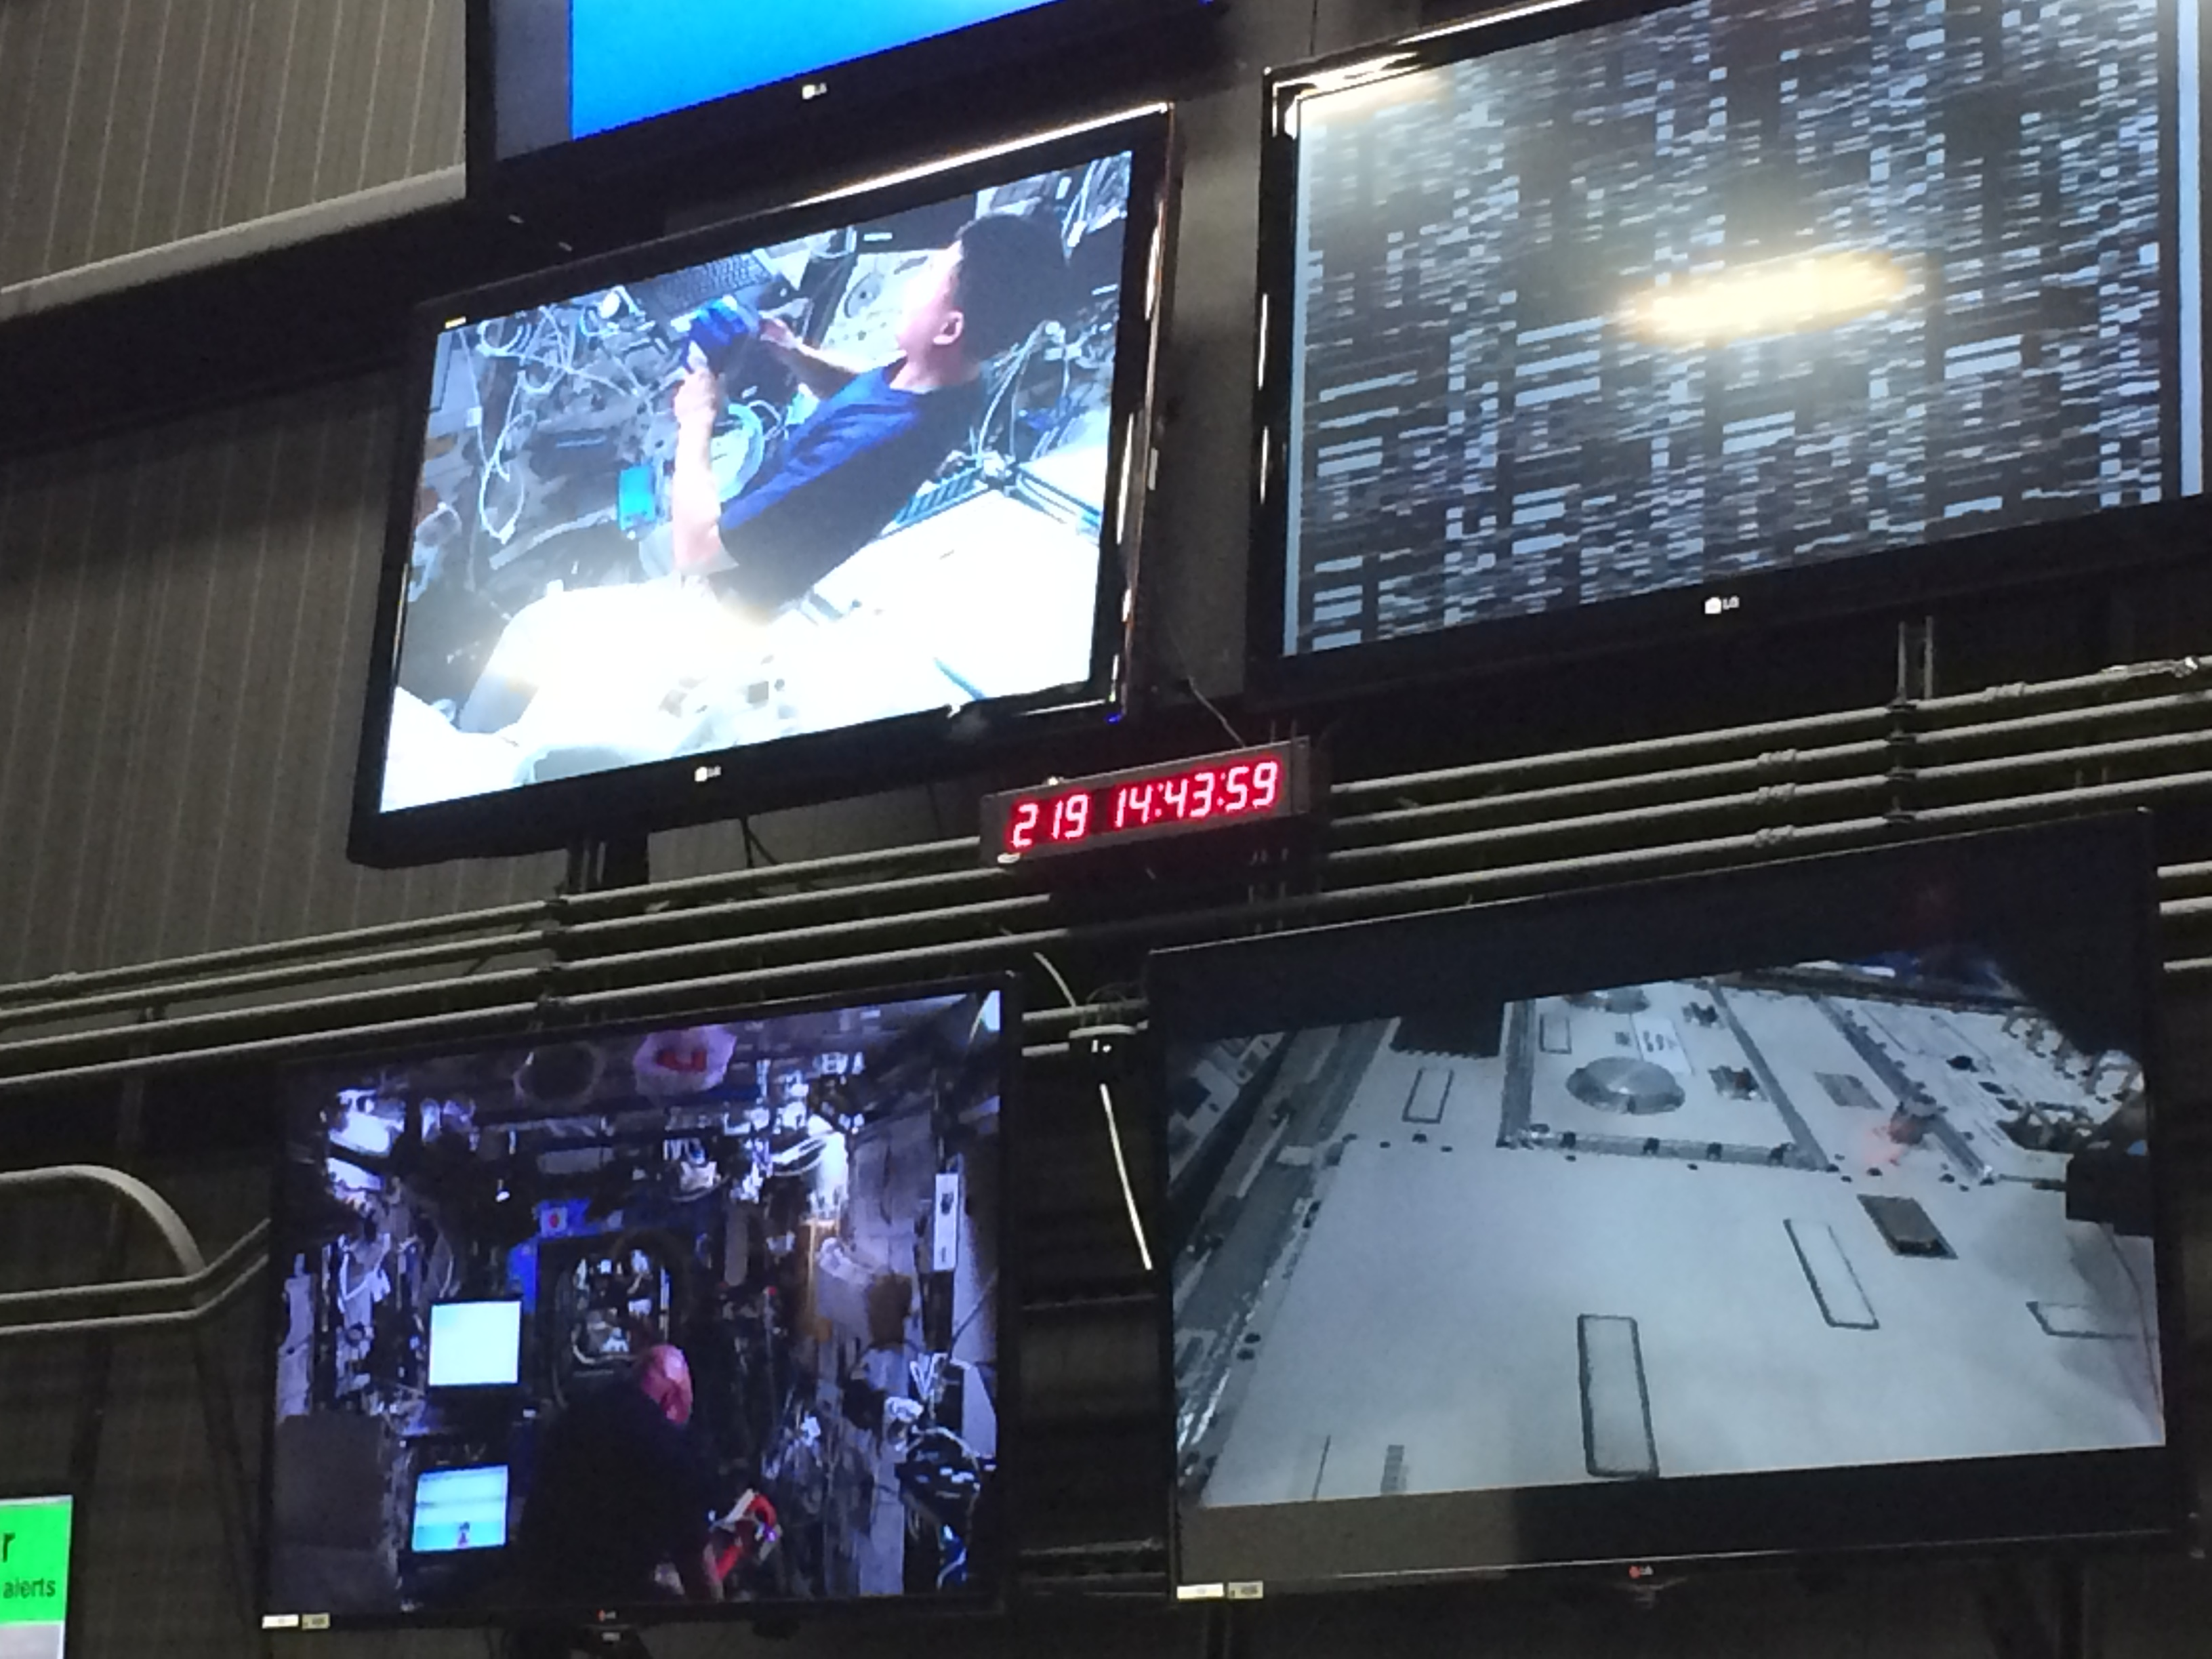 Live feed from the ISS!